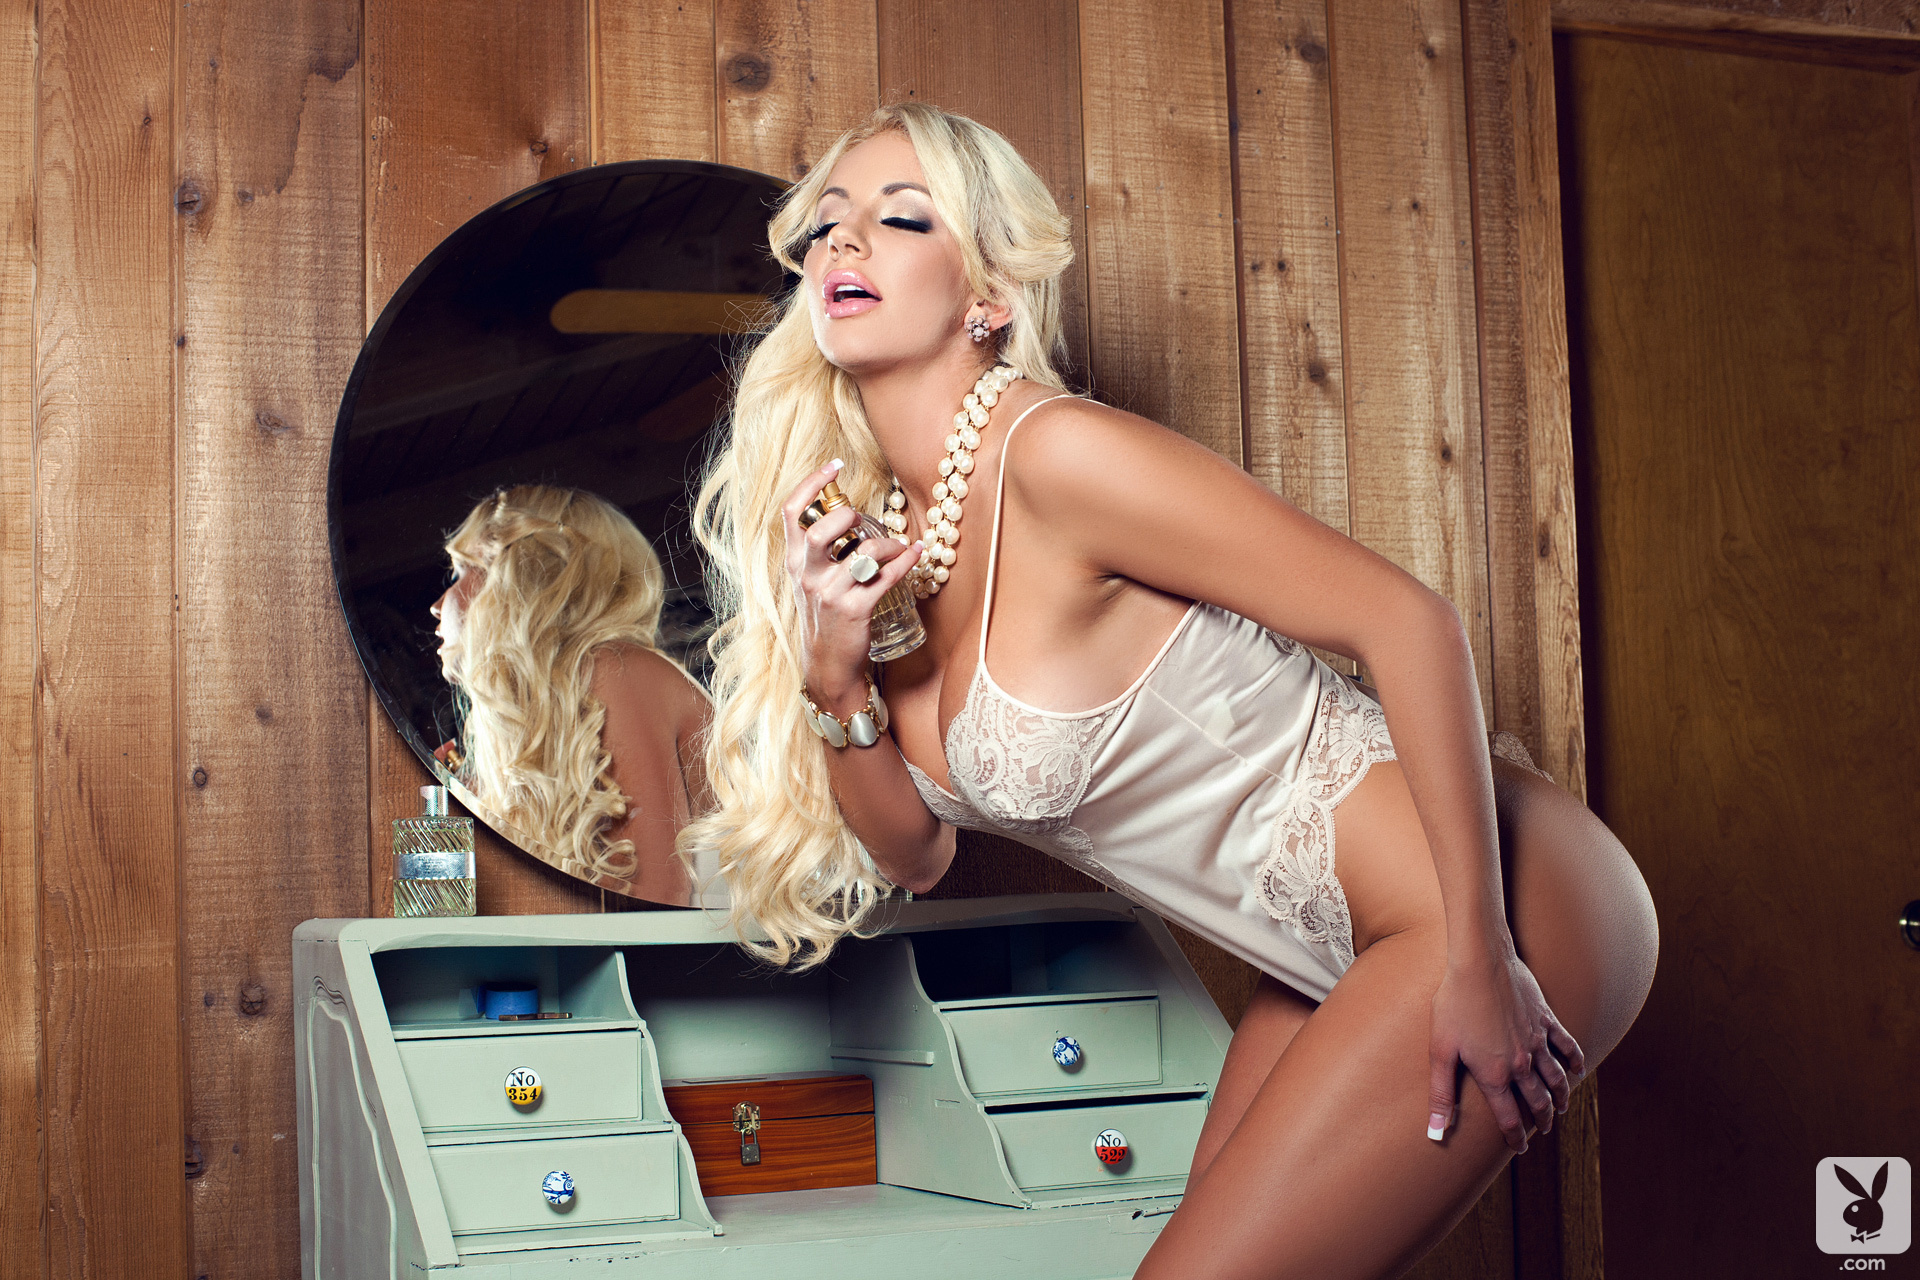 nicolette shea wallpapers images photos pictures backgrounds